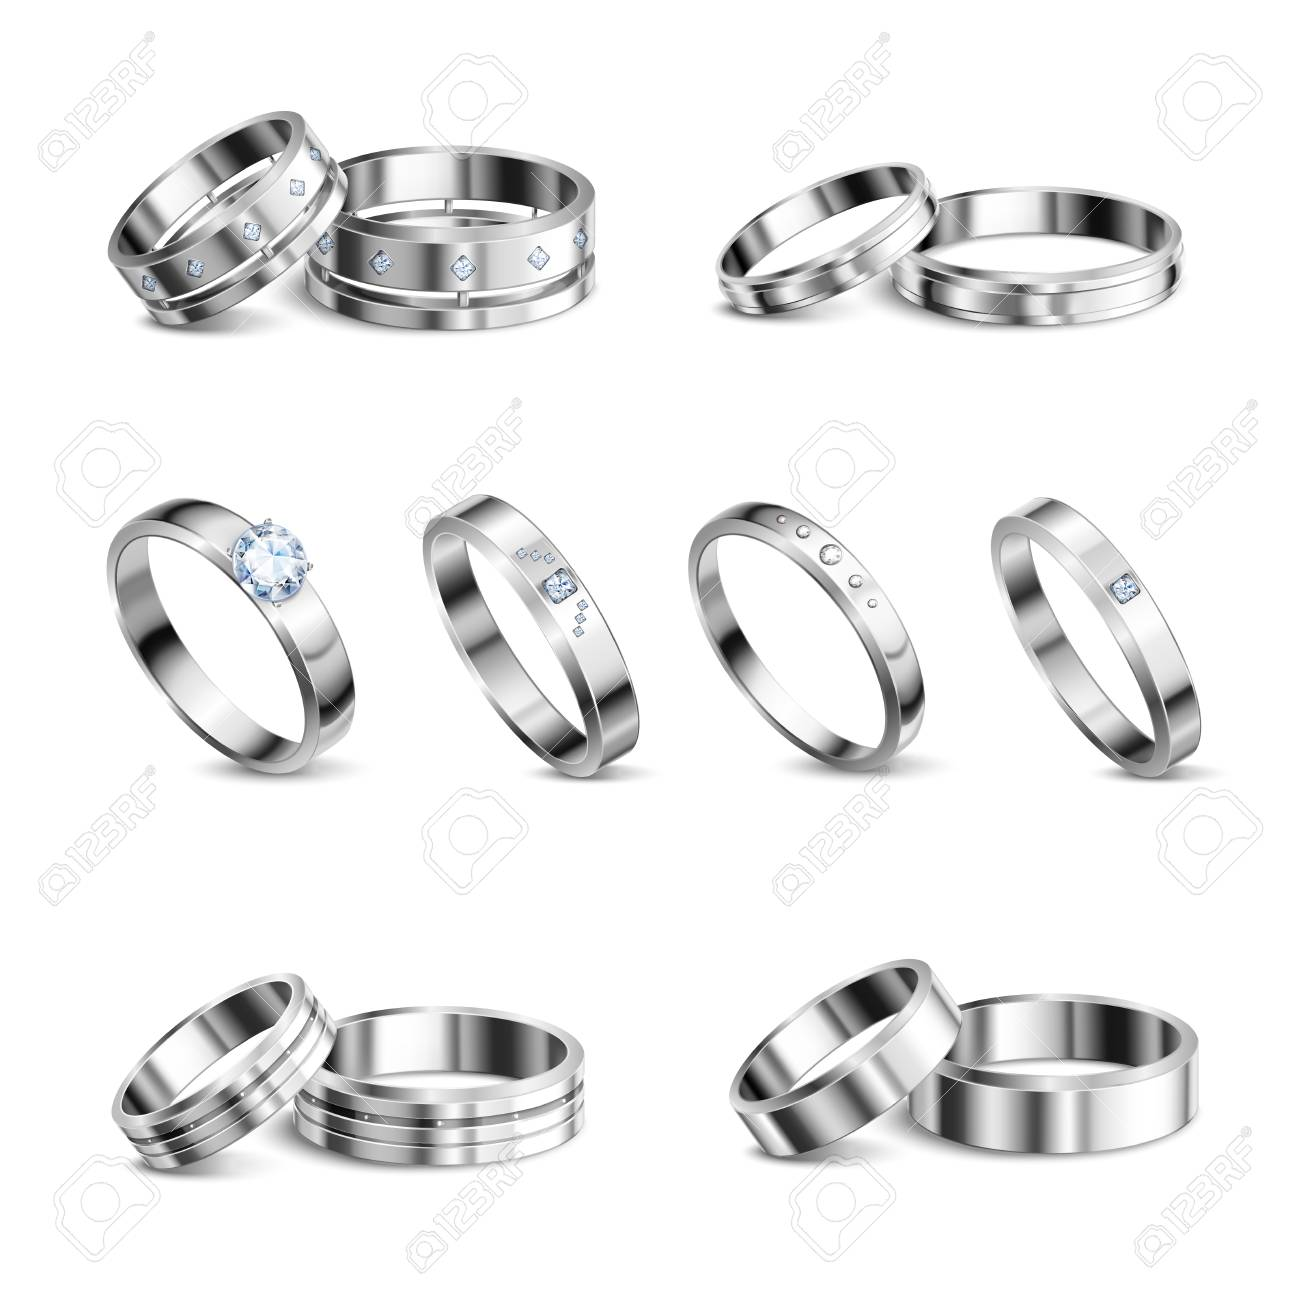 White gold platina noble metals wedding rings 6 realistic isolated sets jewelry shadow neutral background vector illustration - 119530542